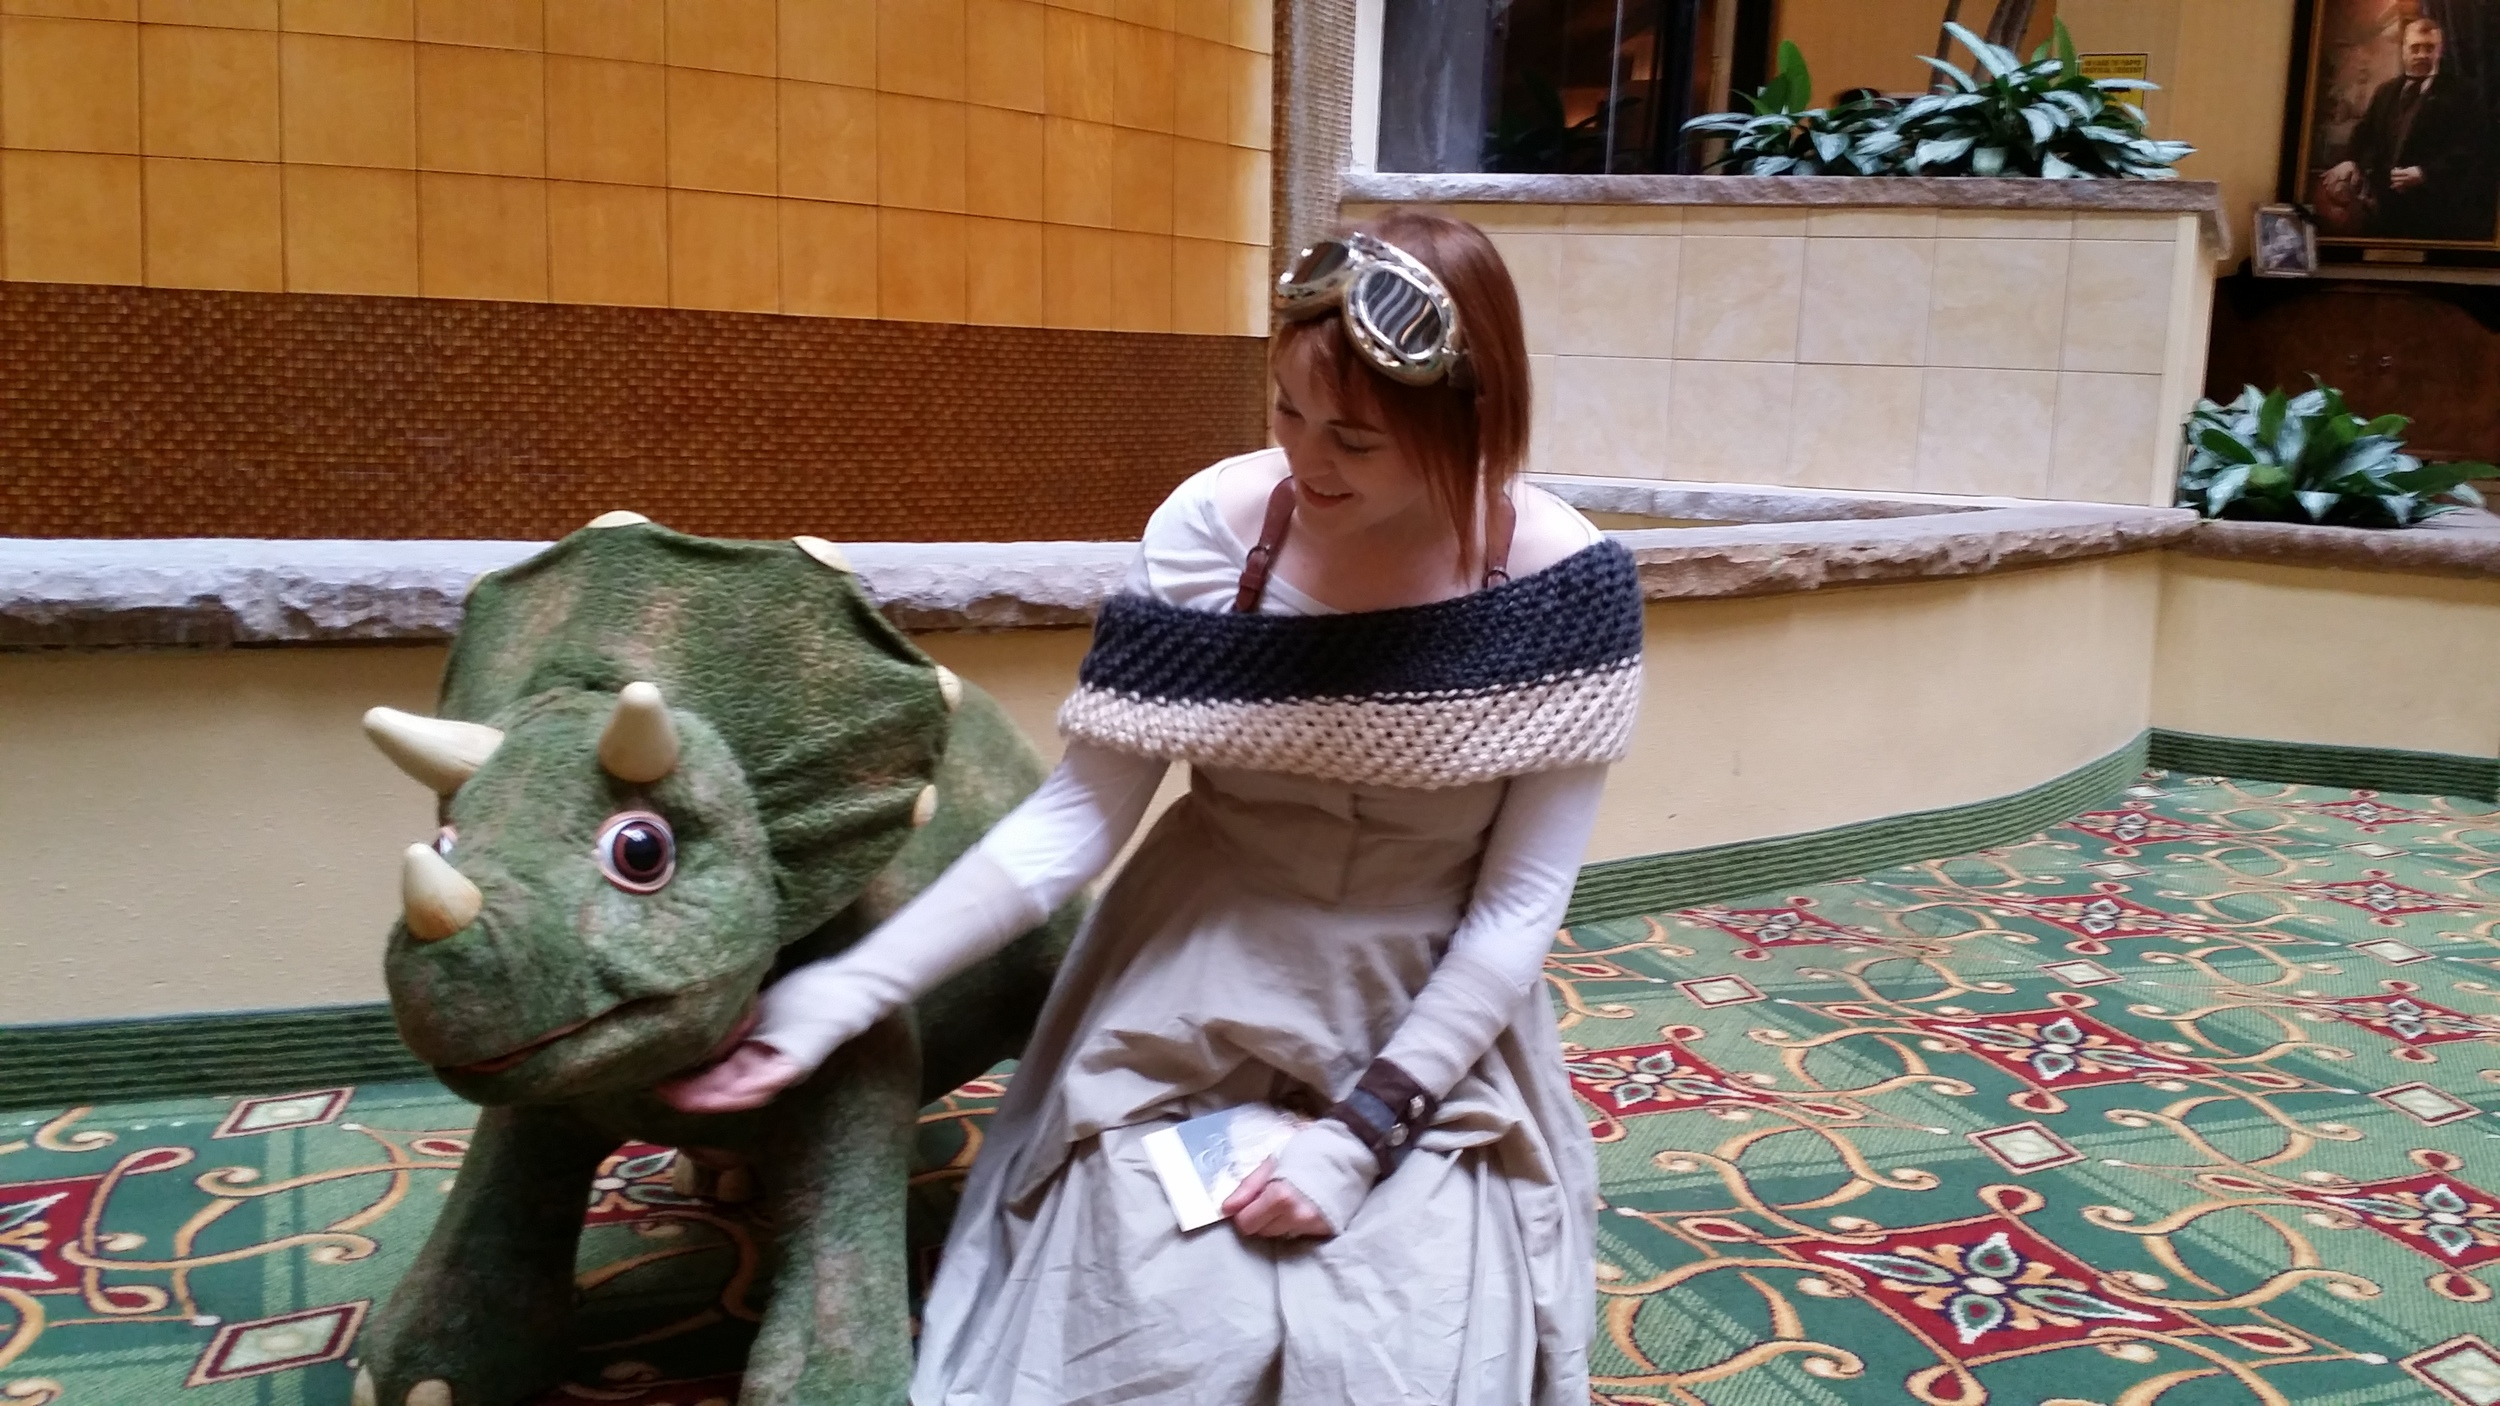 I made friends with one of the three triceratops (which are an actual Playskool toy)